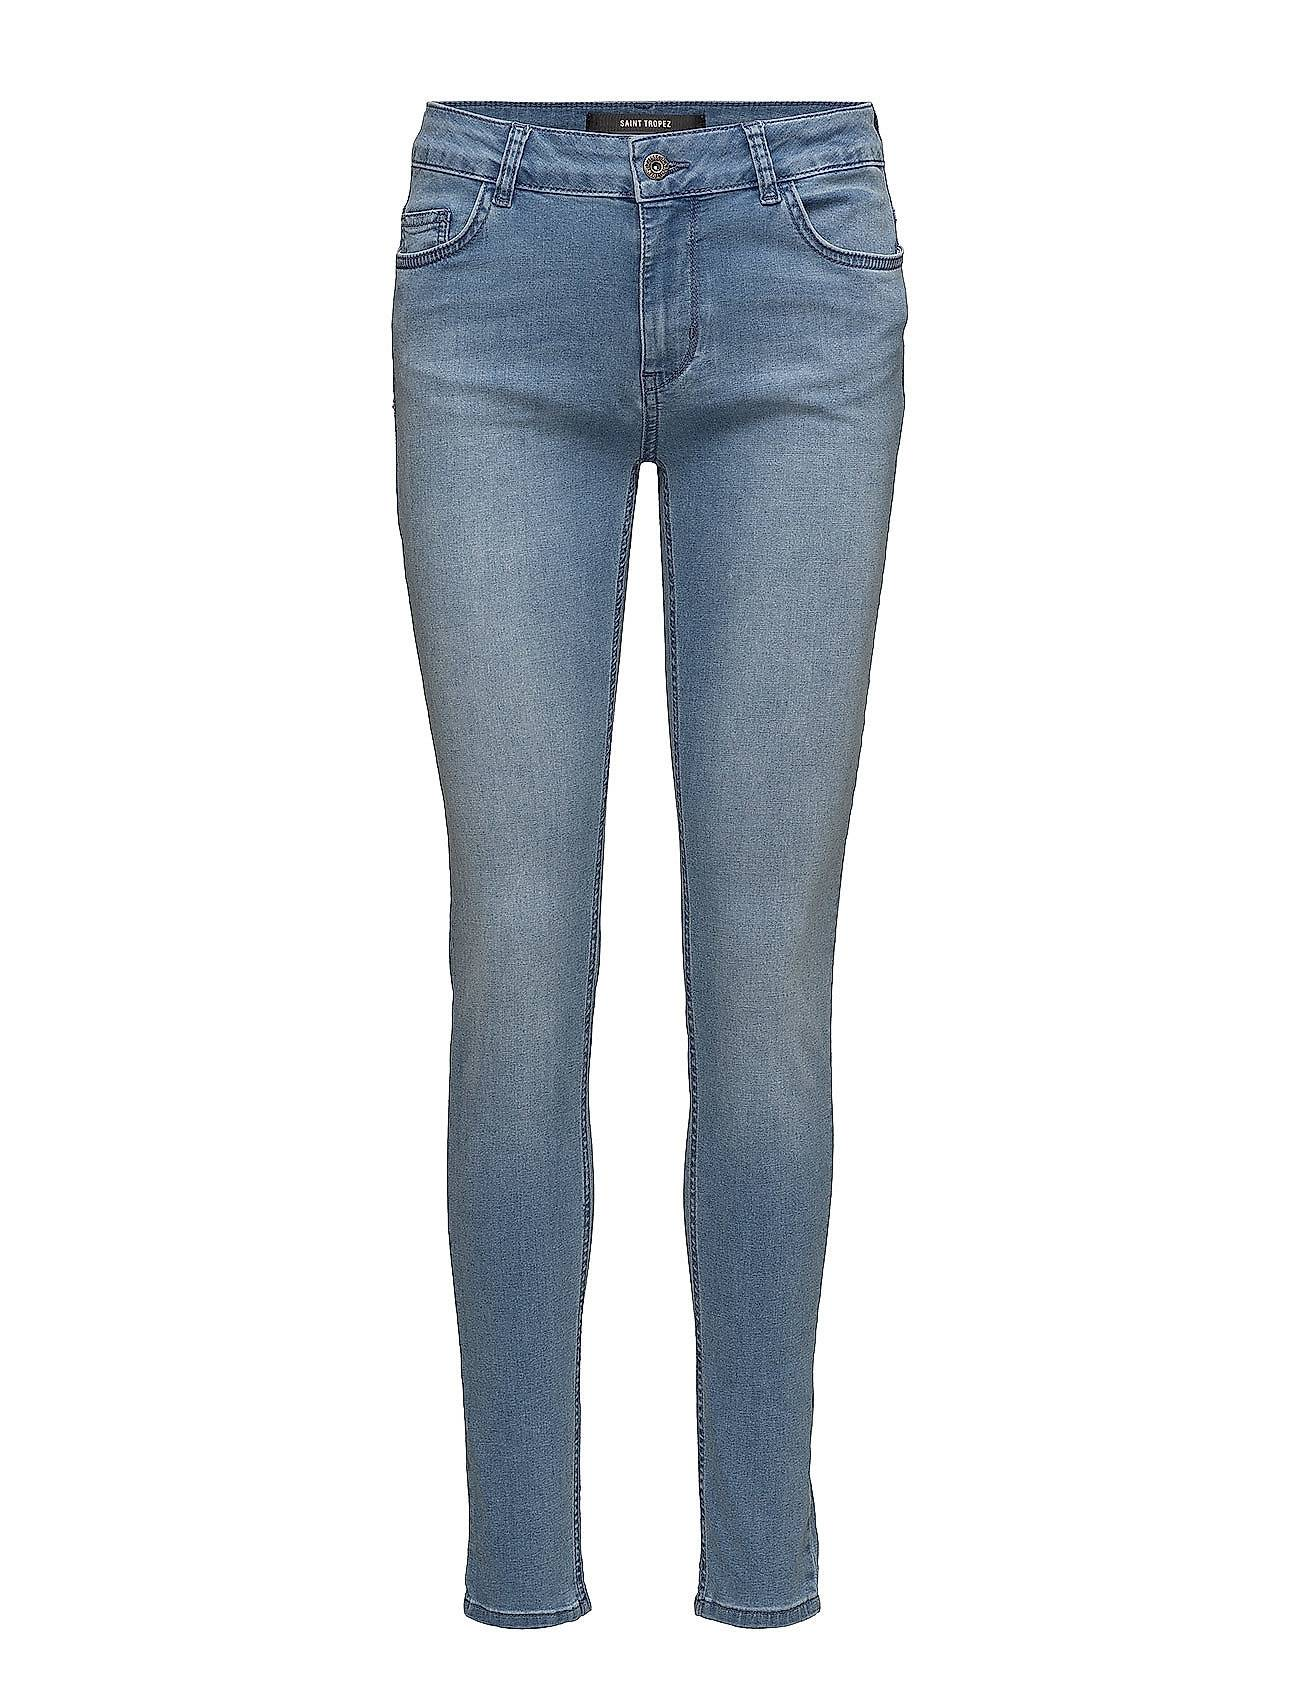 Saint Tropez Tight Fit Jeans With Pockets